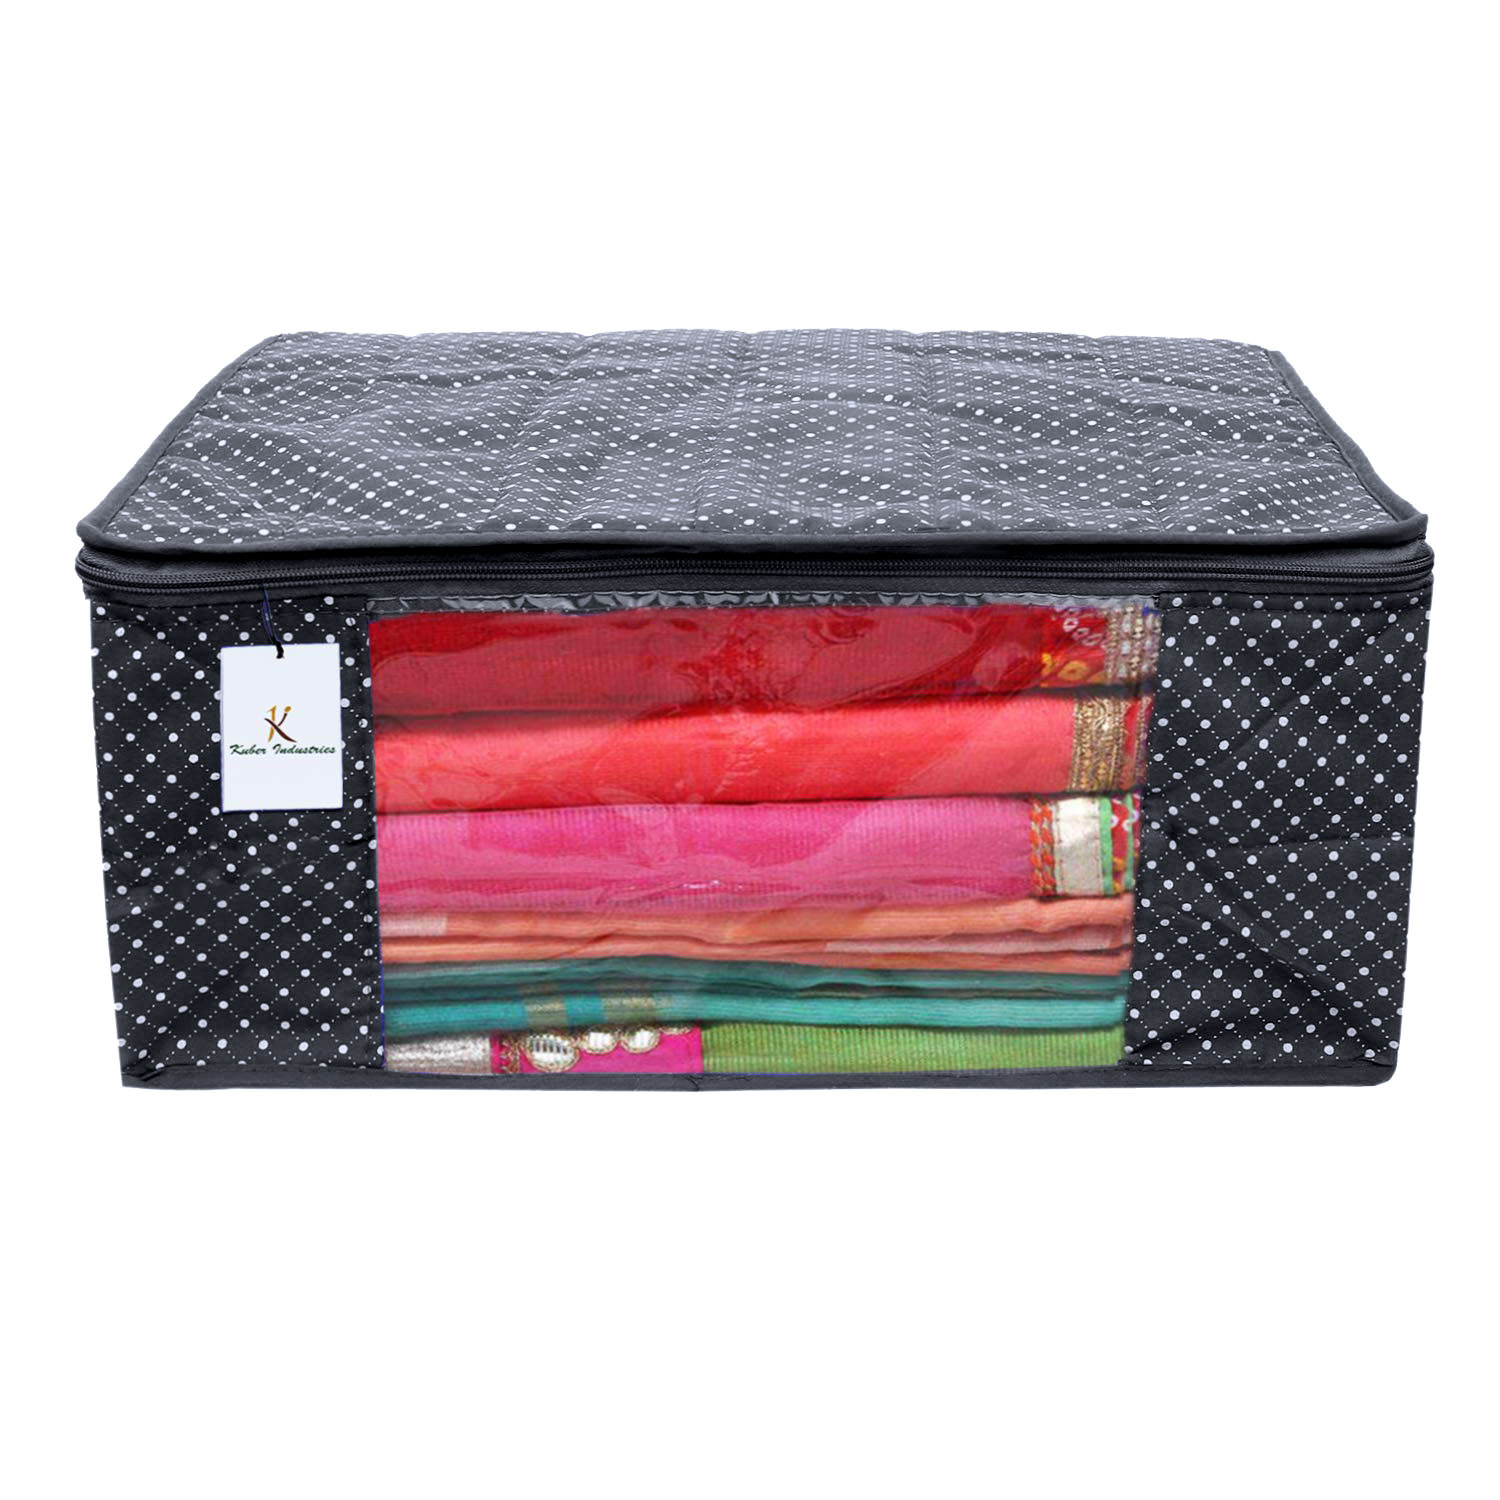 Kuber Industries Polka Dots 2 Pieces Cotton 3 Layered Quilted Saree Cover (Red & Black) - CTKTC31130